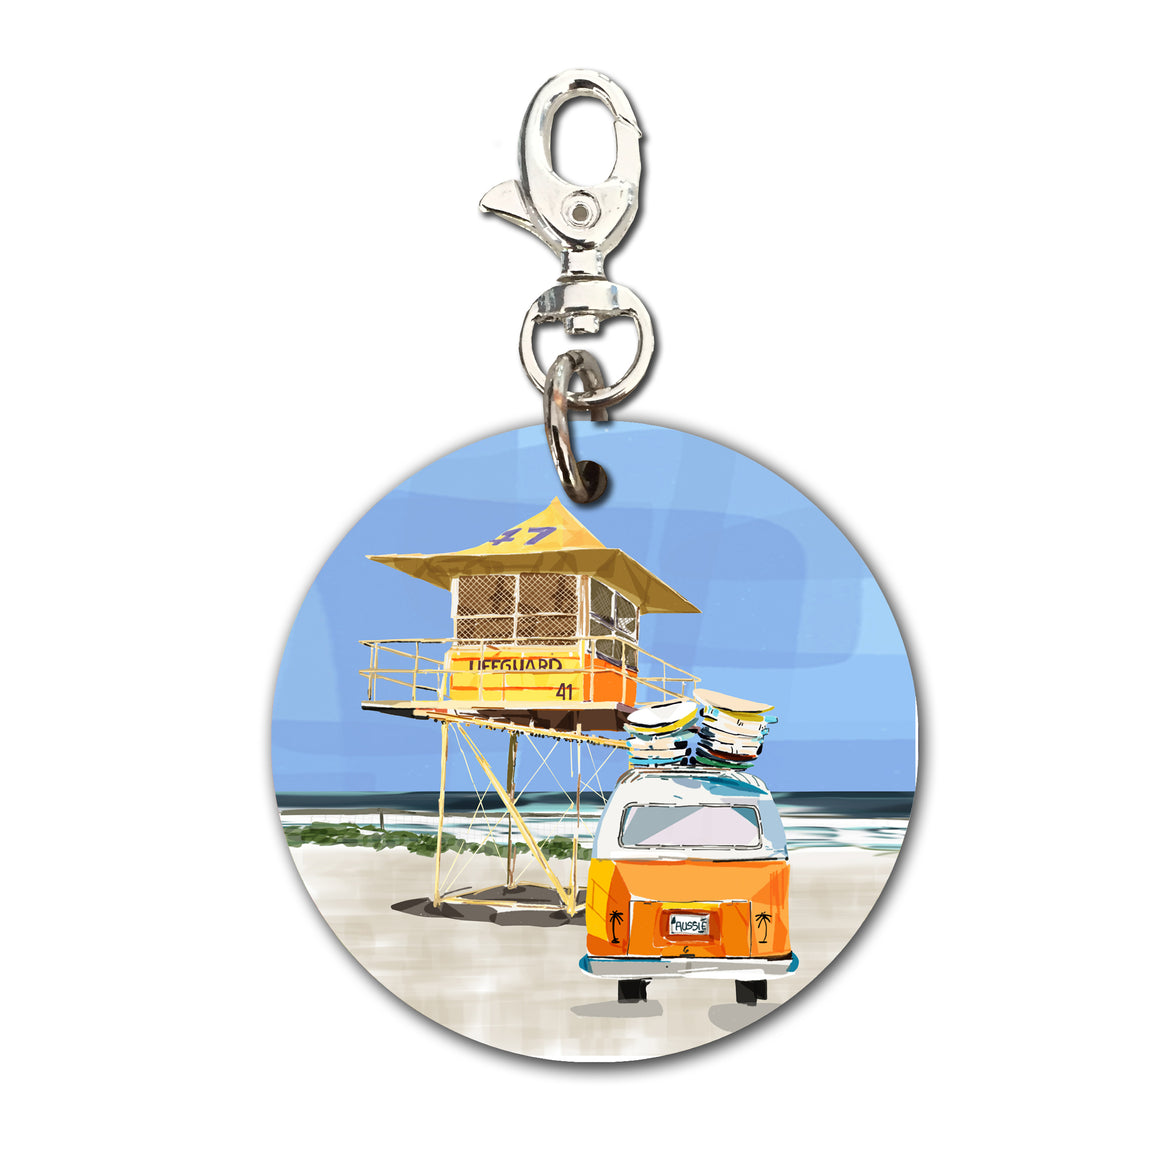 Keyring (Circular) - Iconic Coast Life Saving Tower with Combi